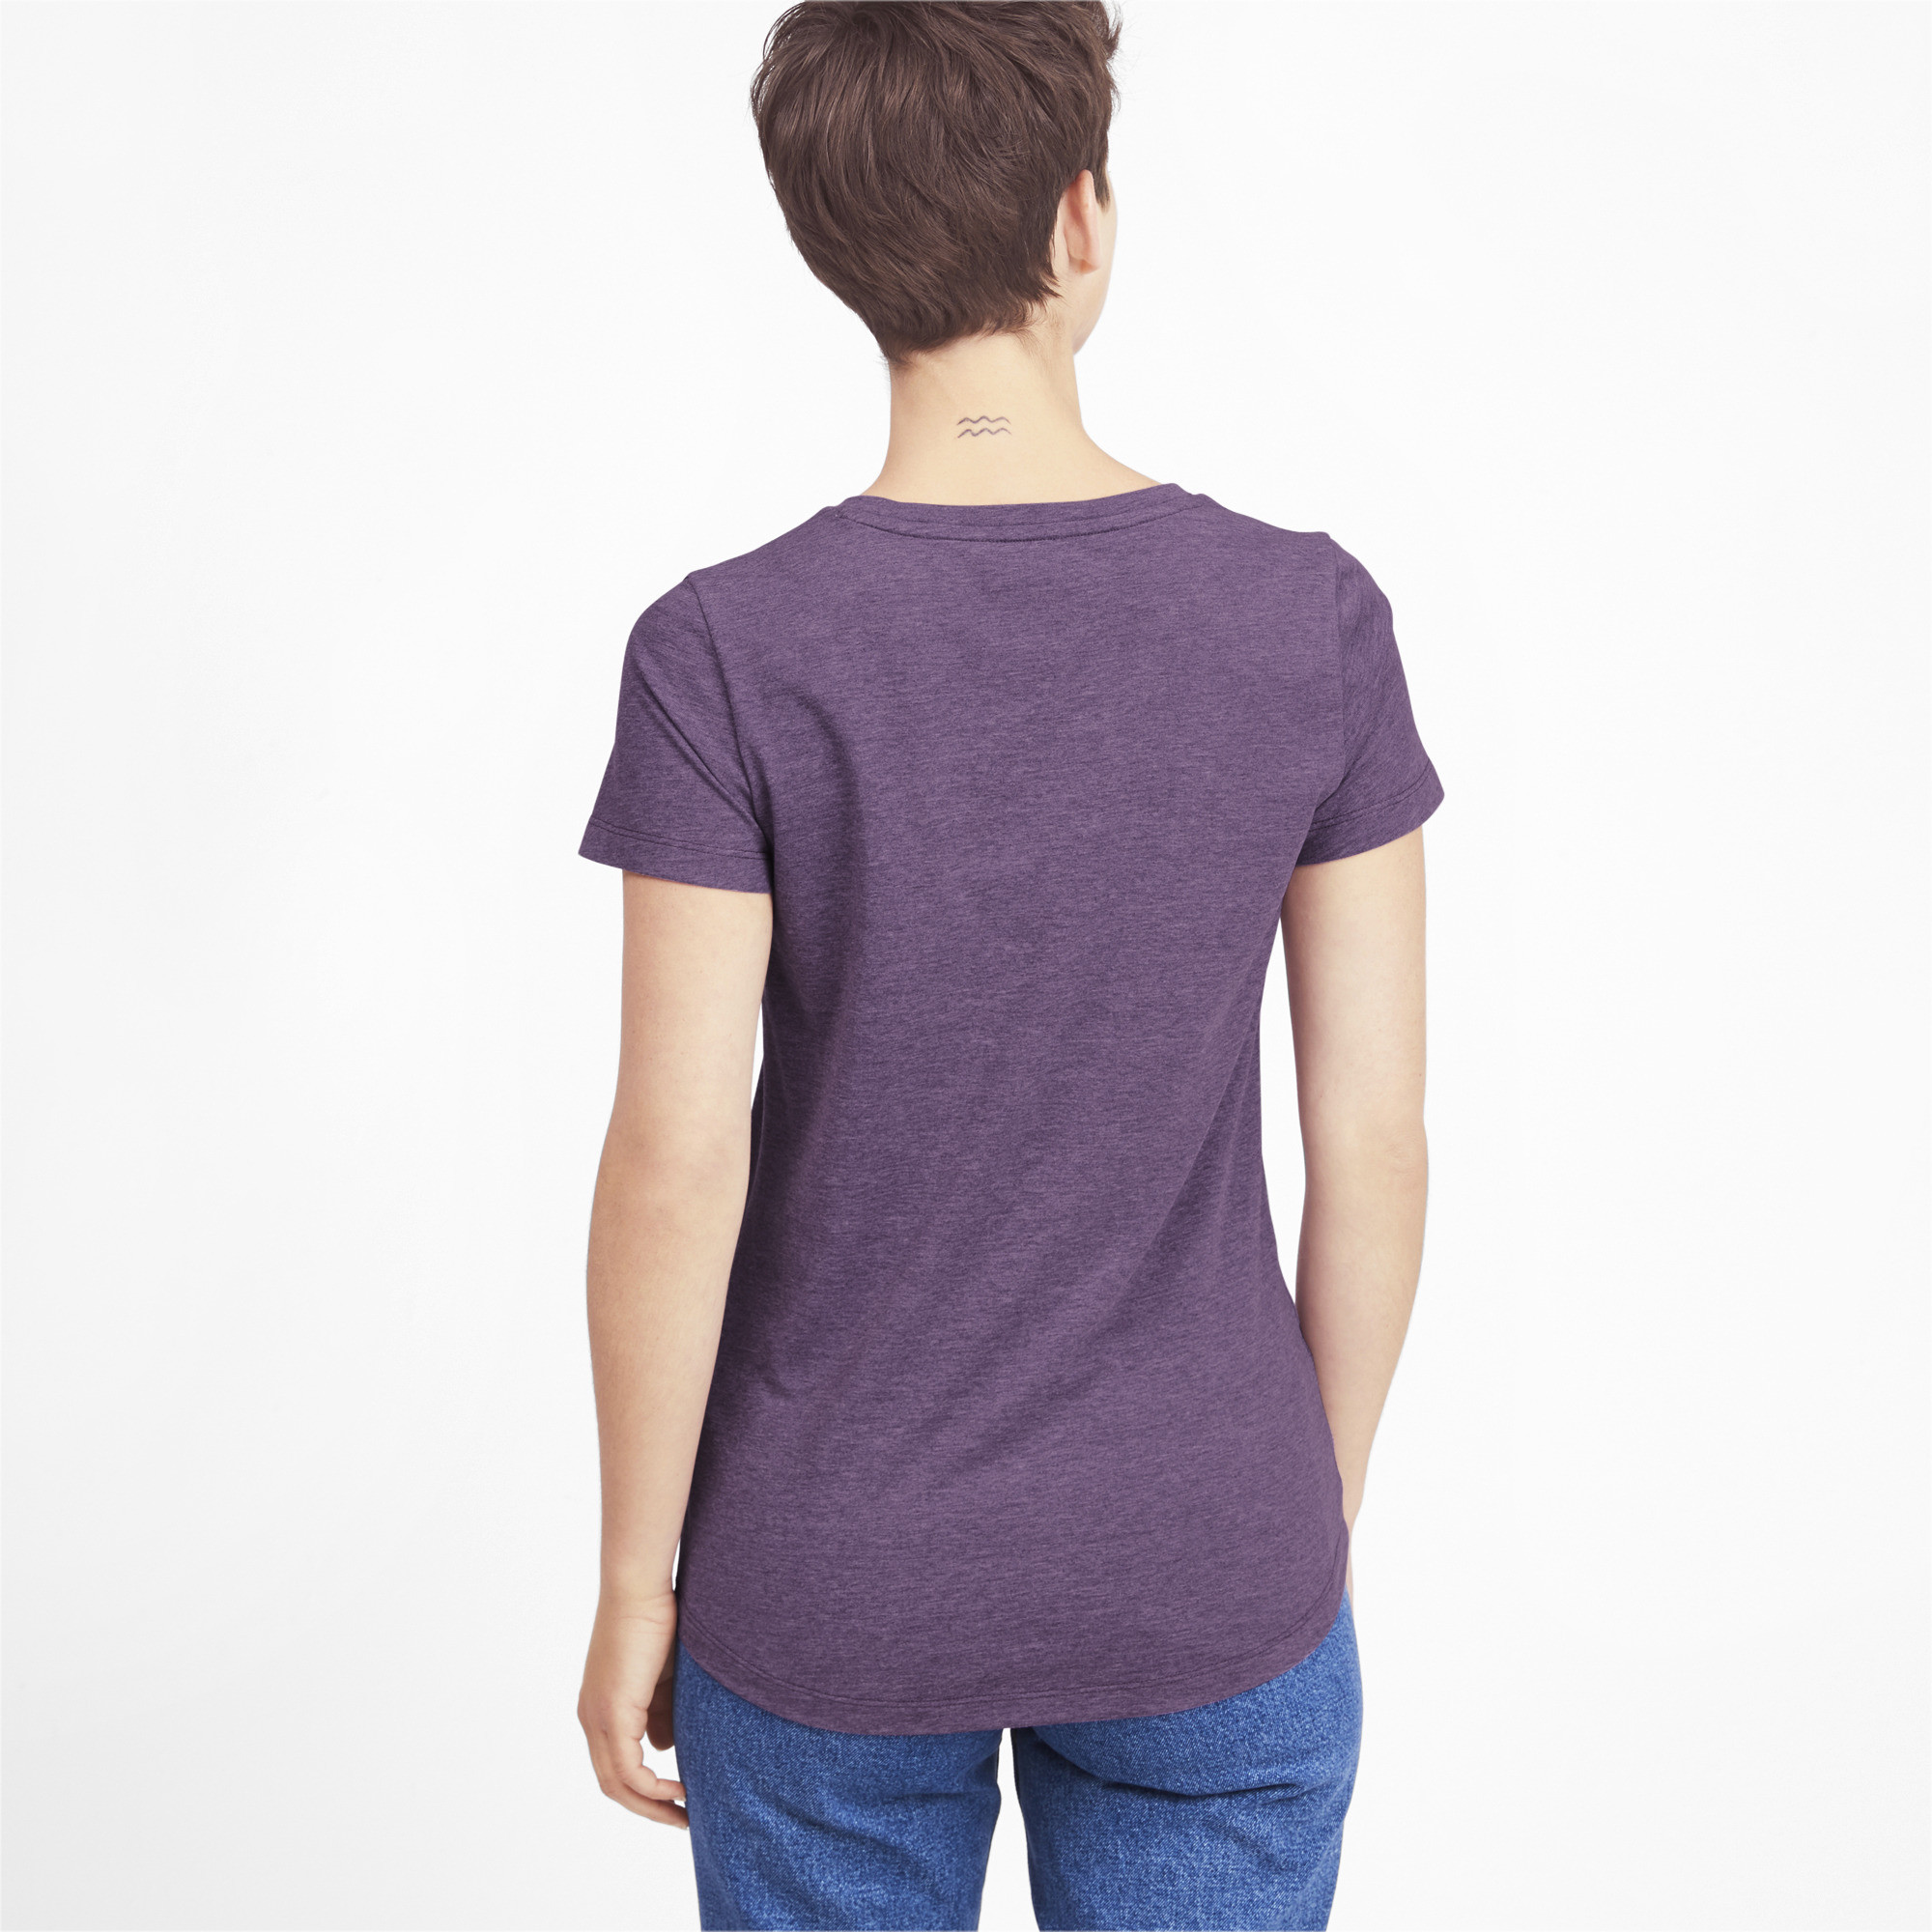 PUMA-Essentials-Women-039-s-Heather-Tee-Women-Tee-Basics thumbnail 19